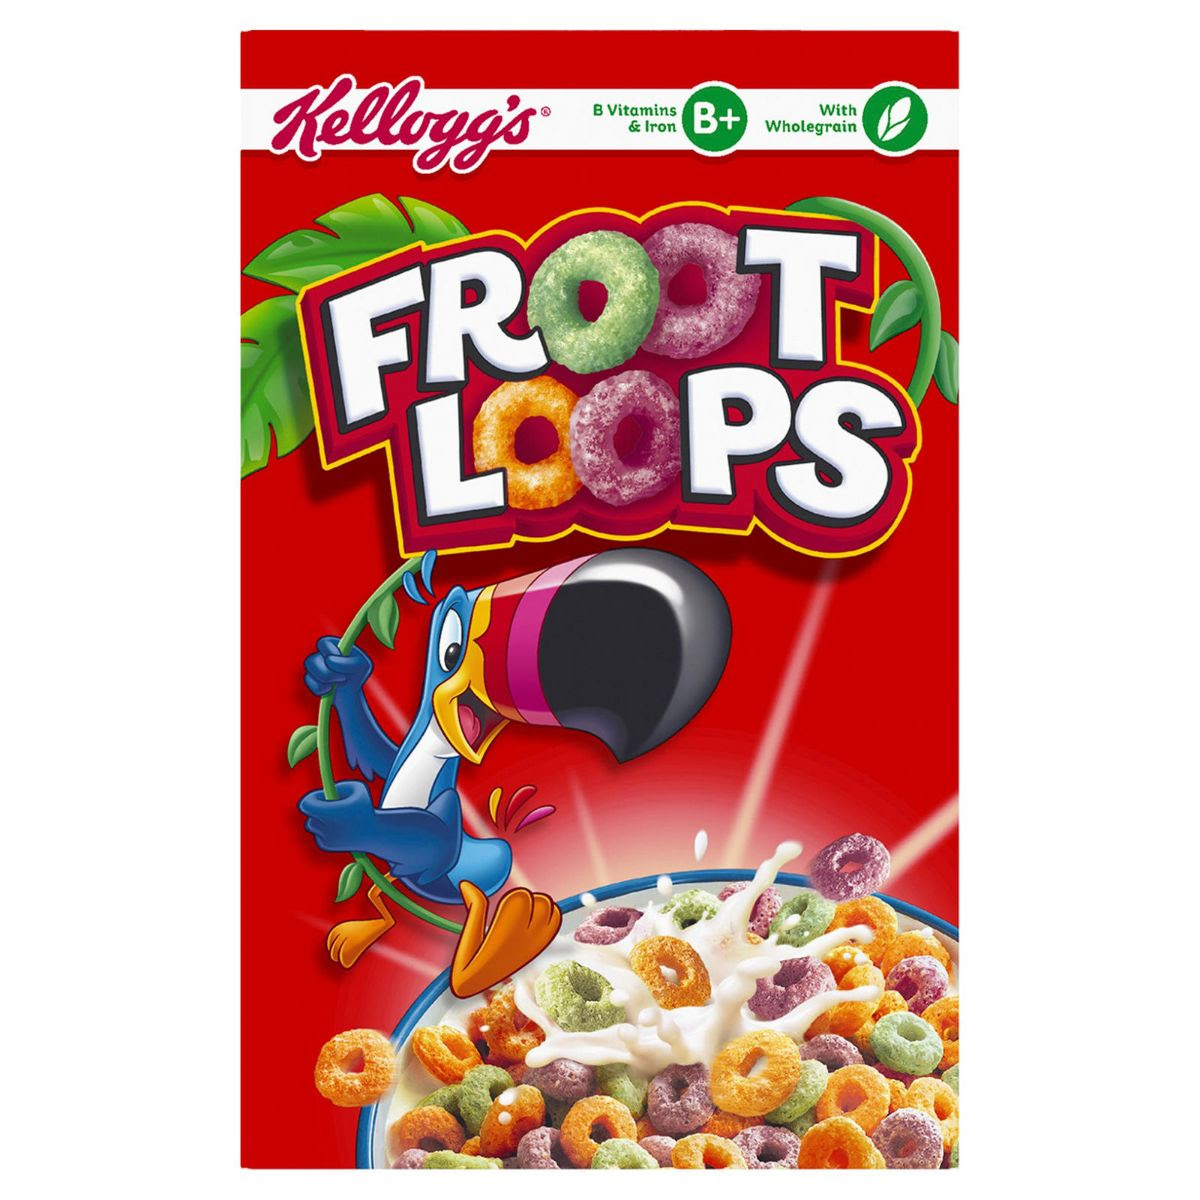 Kellogg's Corn Flakes Froot Loops 350g